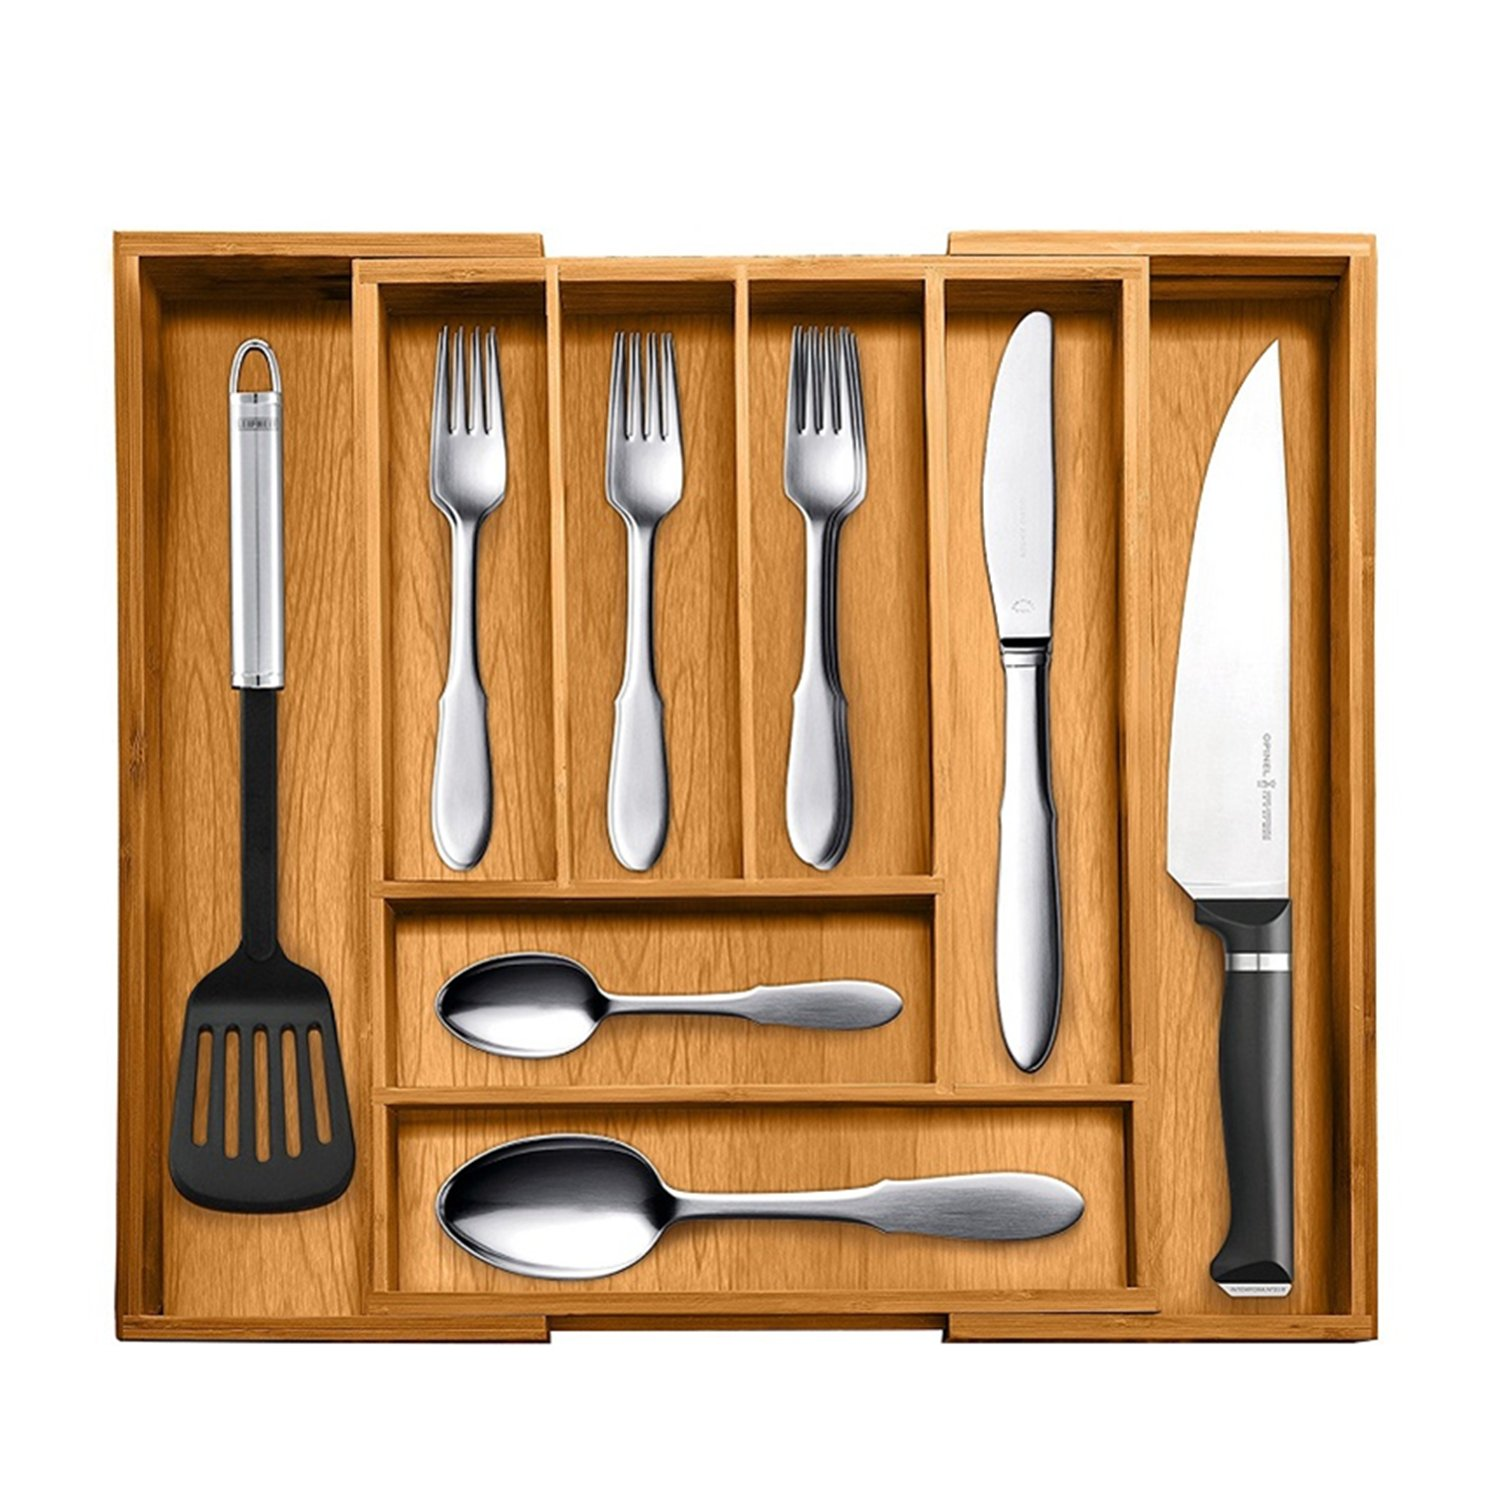 "DenSan BTO35 Expandable 100% Pure Bamboo Tableware Organizer,6-8 Adjustable Slots Organizer for Cutlery,Flatware,Wooden and Stainless Utensils,16.54""Long x11.81""Wide x2.36""high"